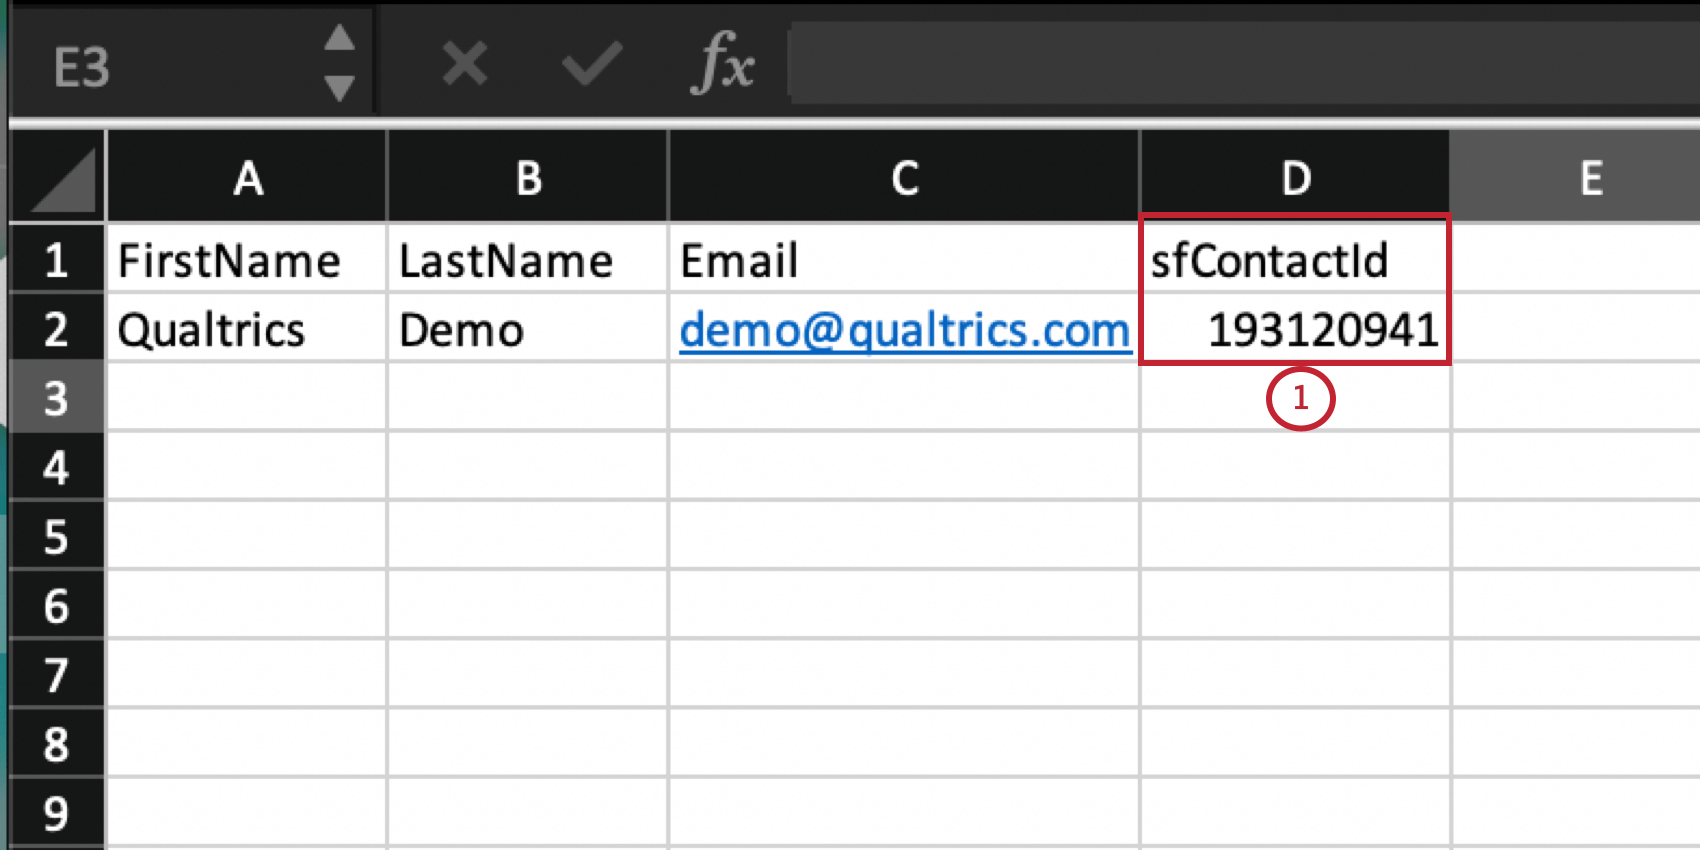 an excel spreedsheet with a column for sfContactId